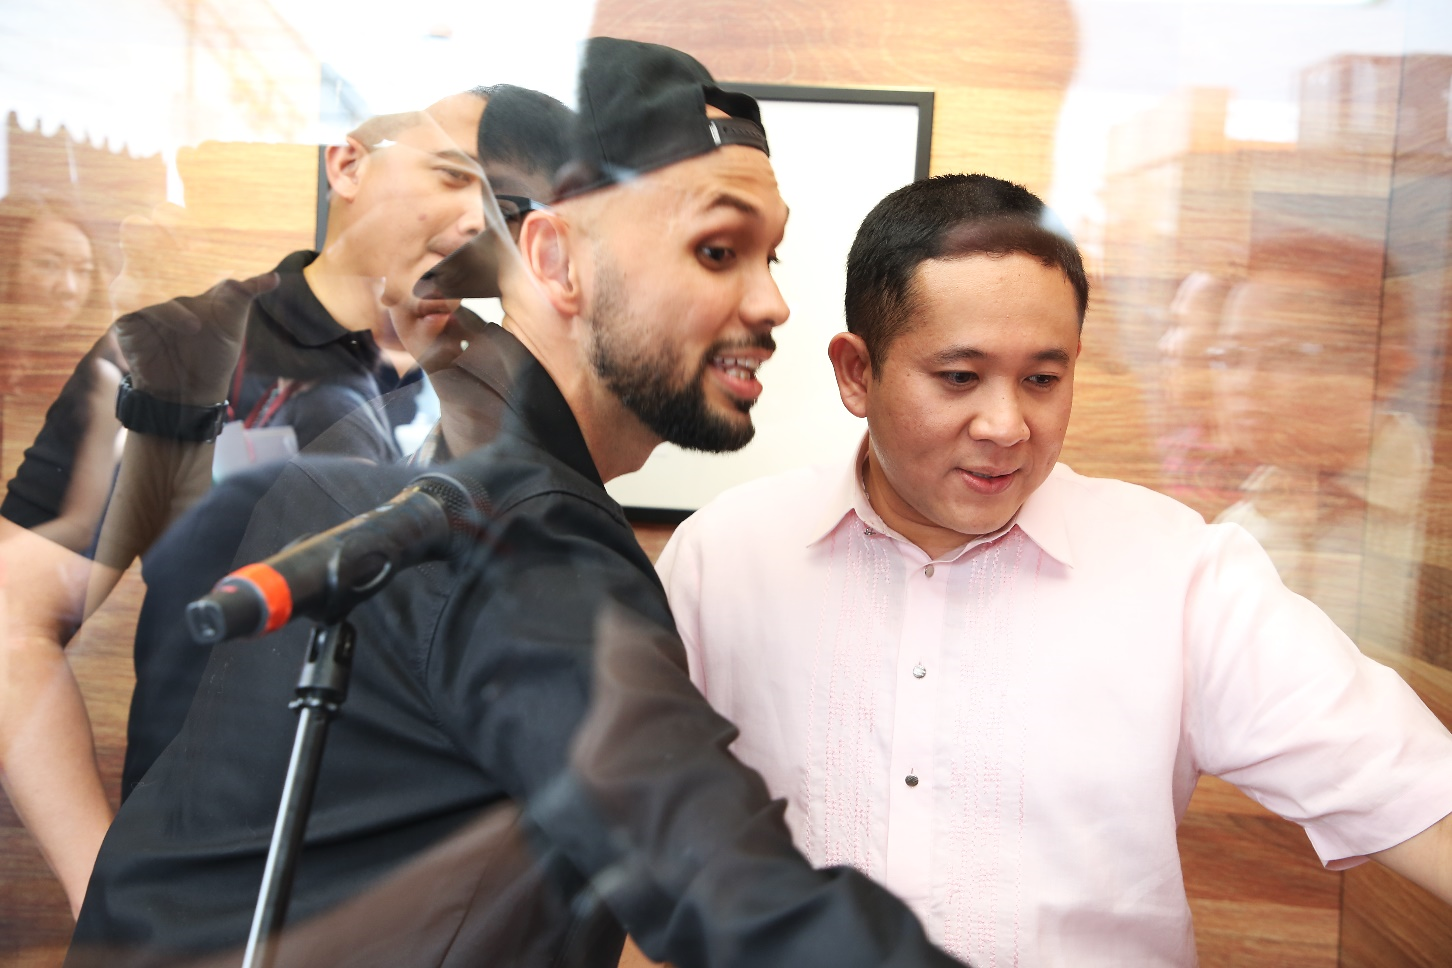 2018-media-launch-2: SPS Amrin Amin tries out the Entertainment audition booth with Aaron Aziz and THELIONCITYBOY